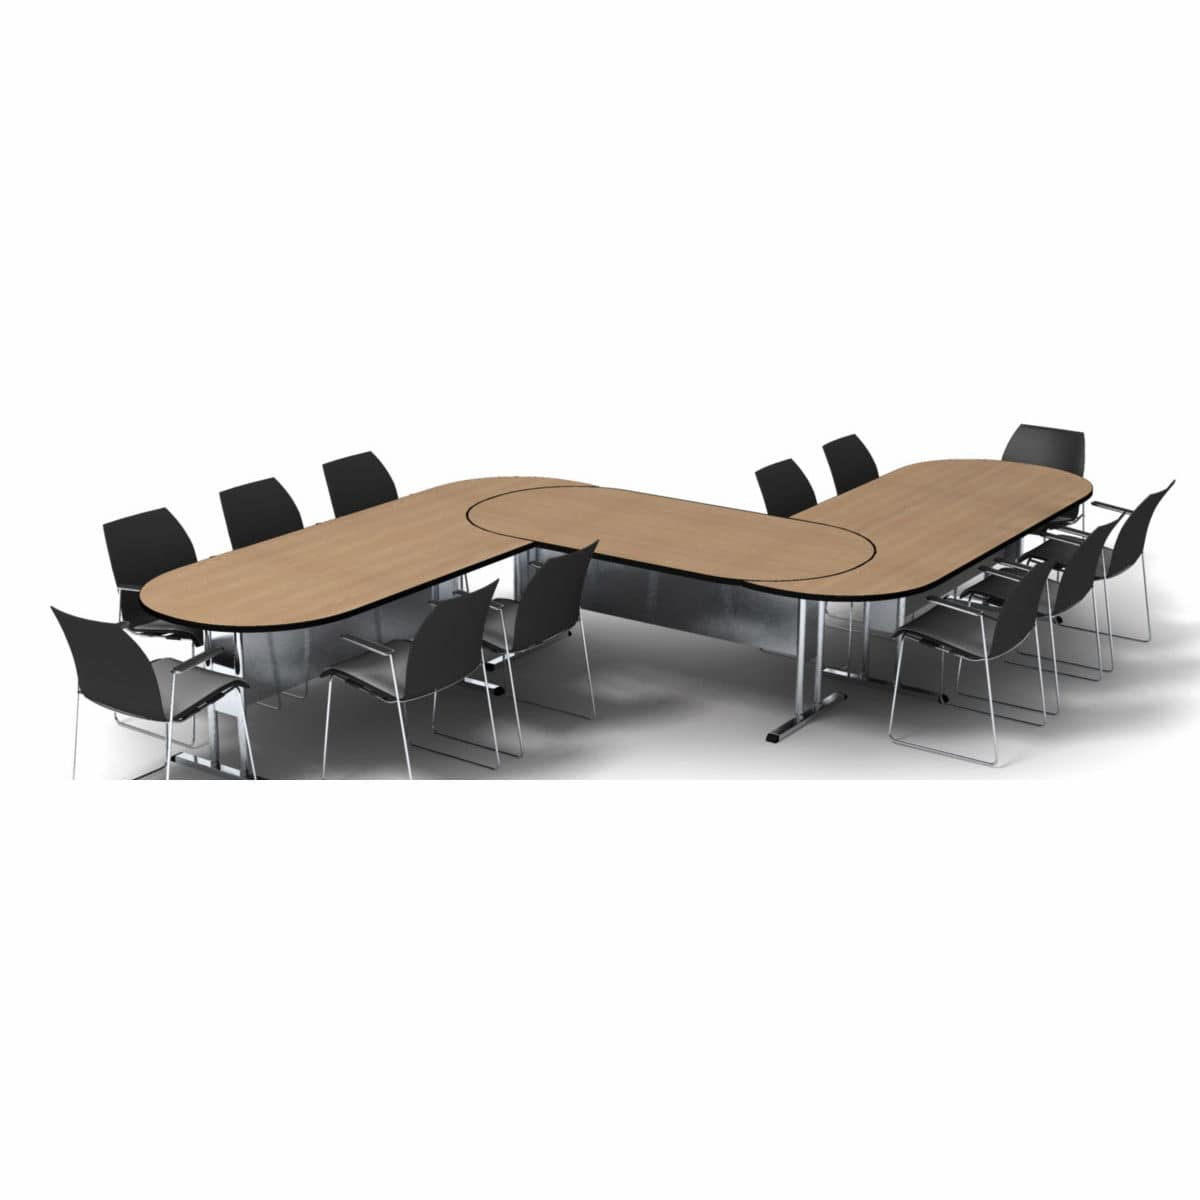 office library furniture. 2d/3d object library - office furniture office furniture 5